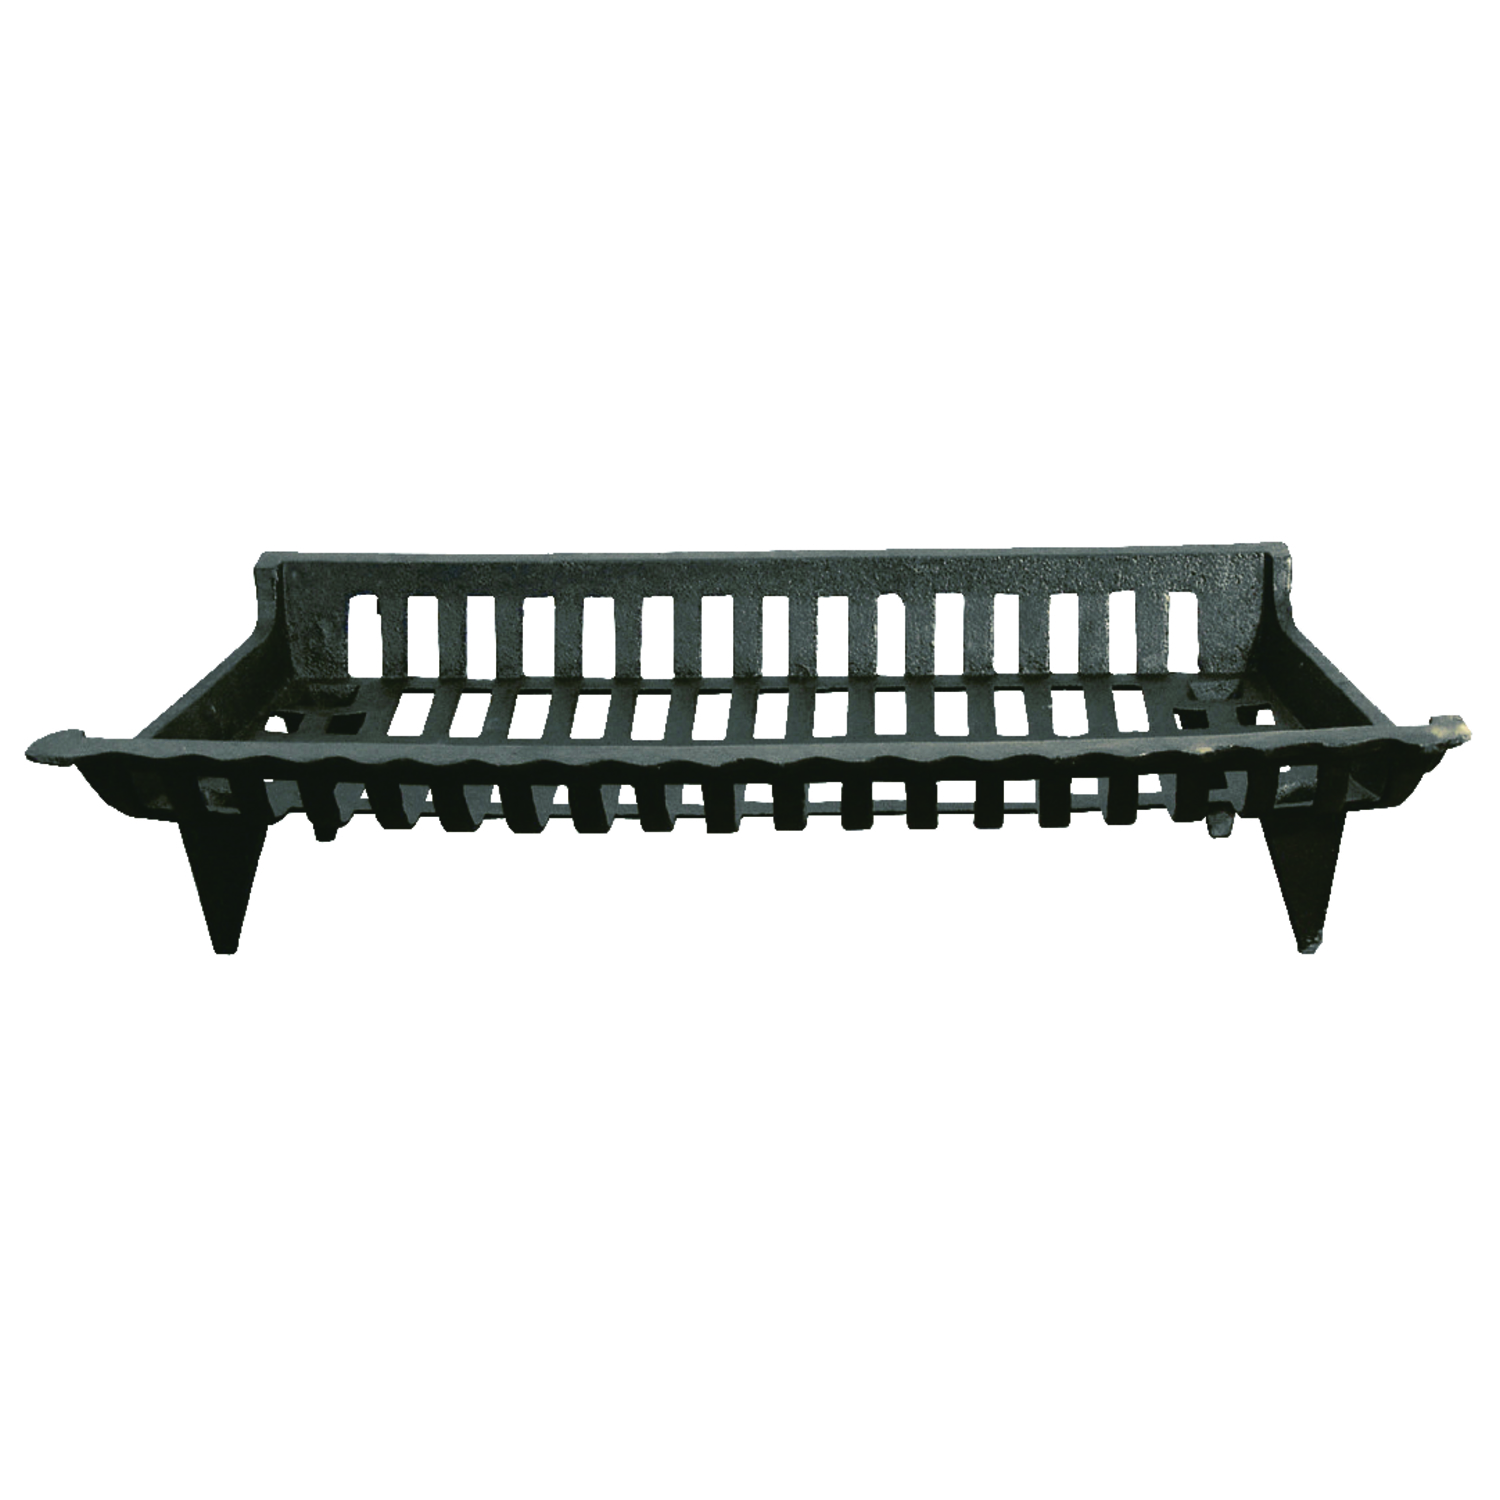 Fireplace Grate Blowers Wood Burning Ace Black Cast Iron Fireplace Grate Ace Hardware